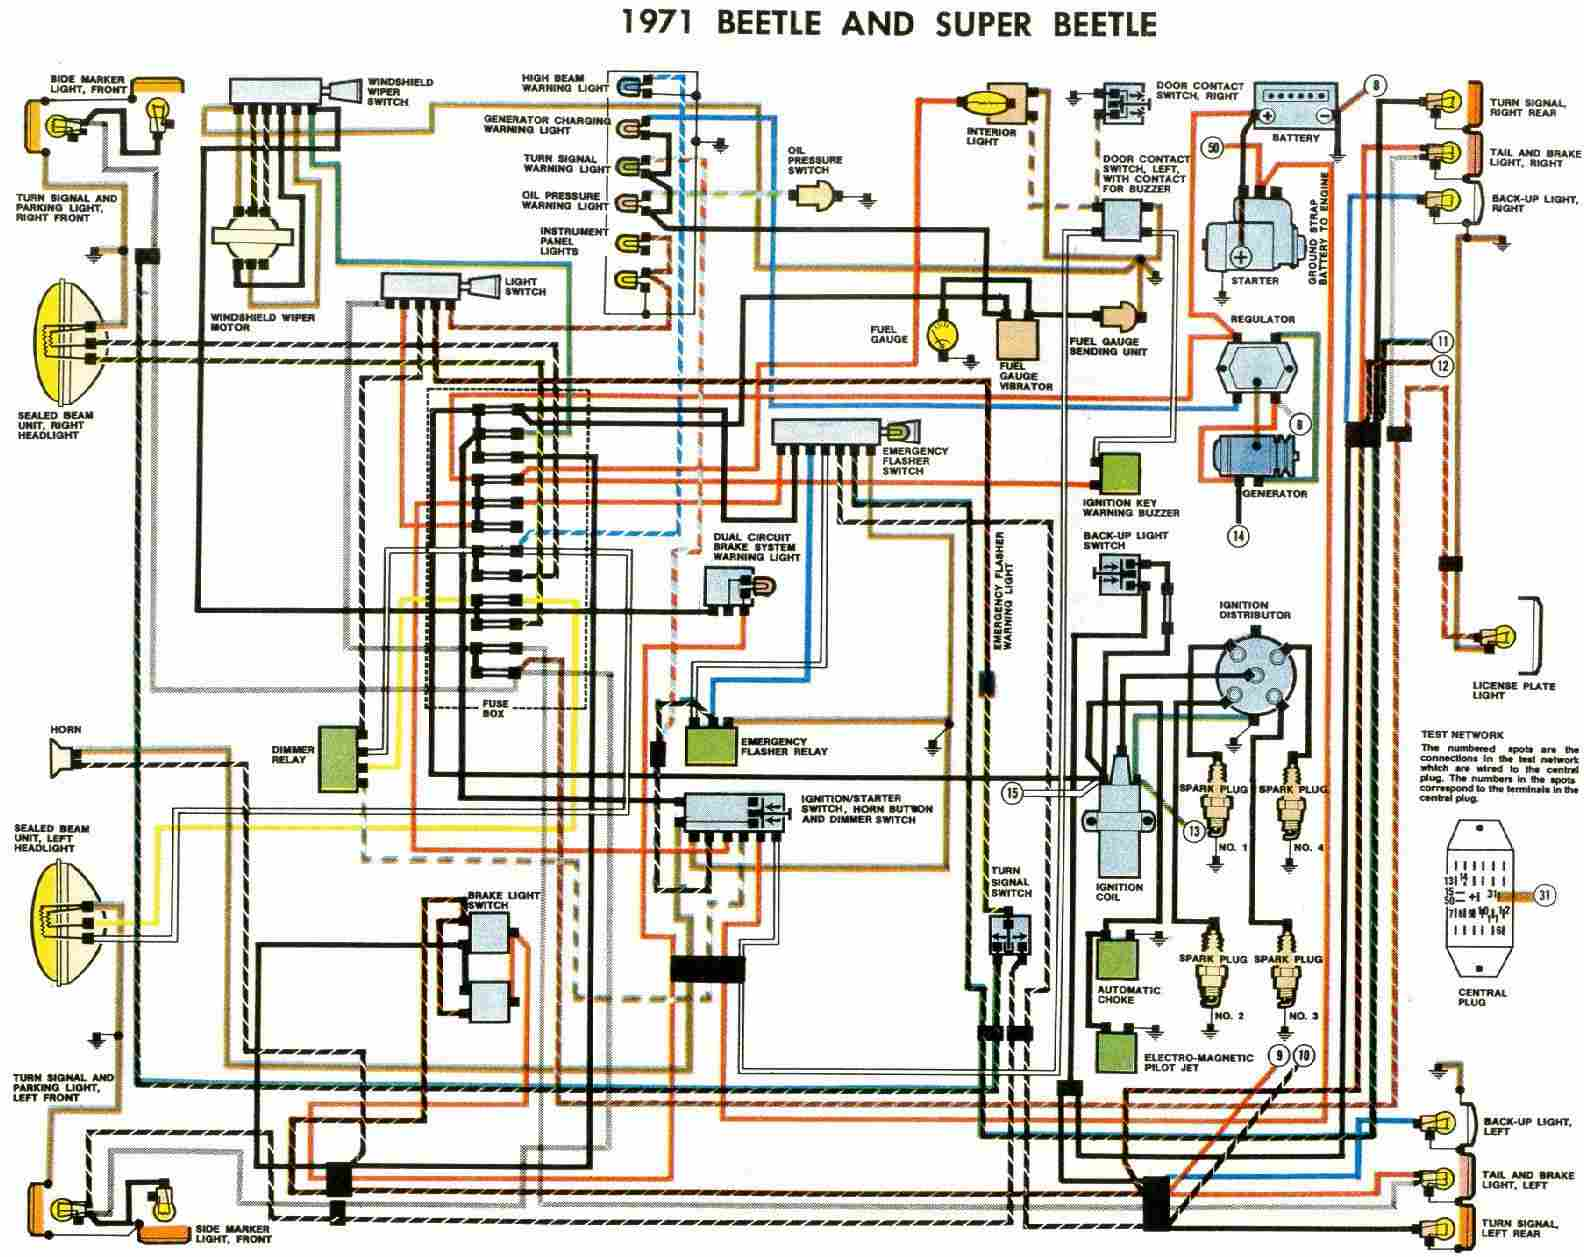 small resolution of vw beetle and super beetle 1971 electrical wiring diagram skoda fabia power steering wiring diagram skoda